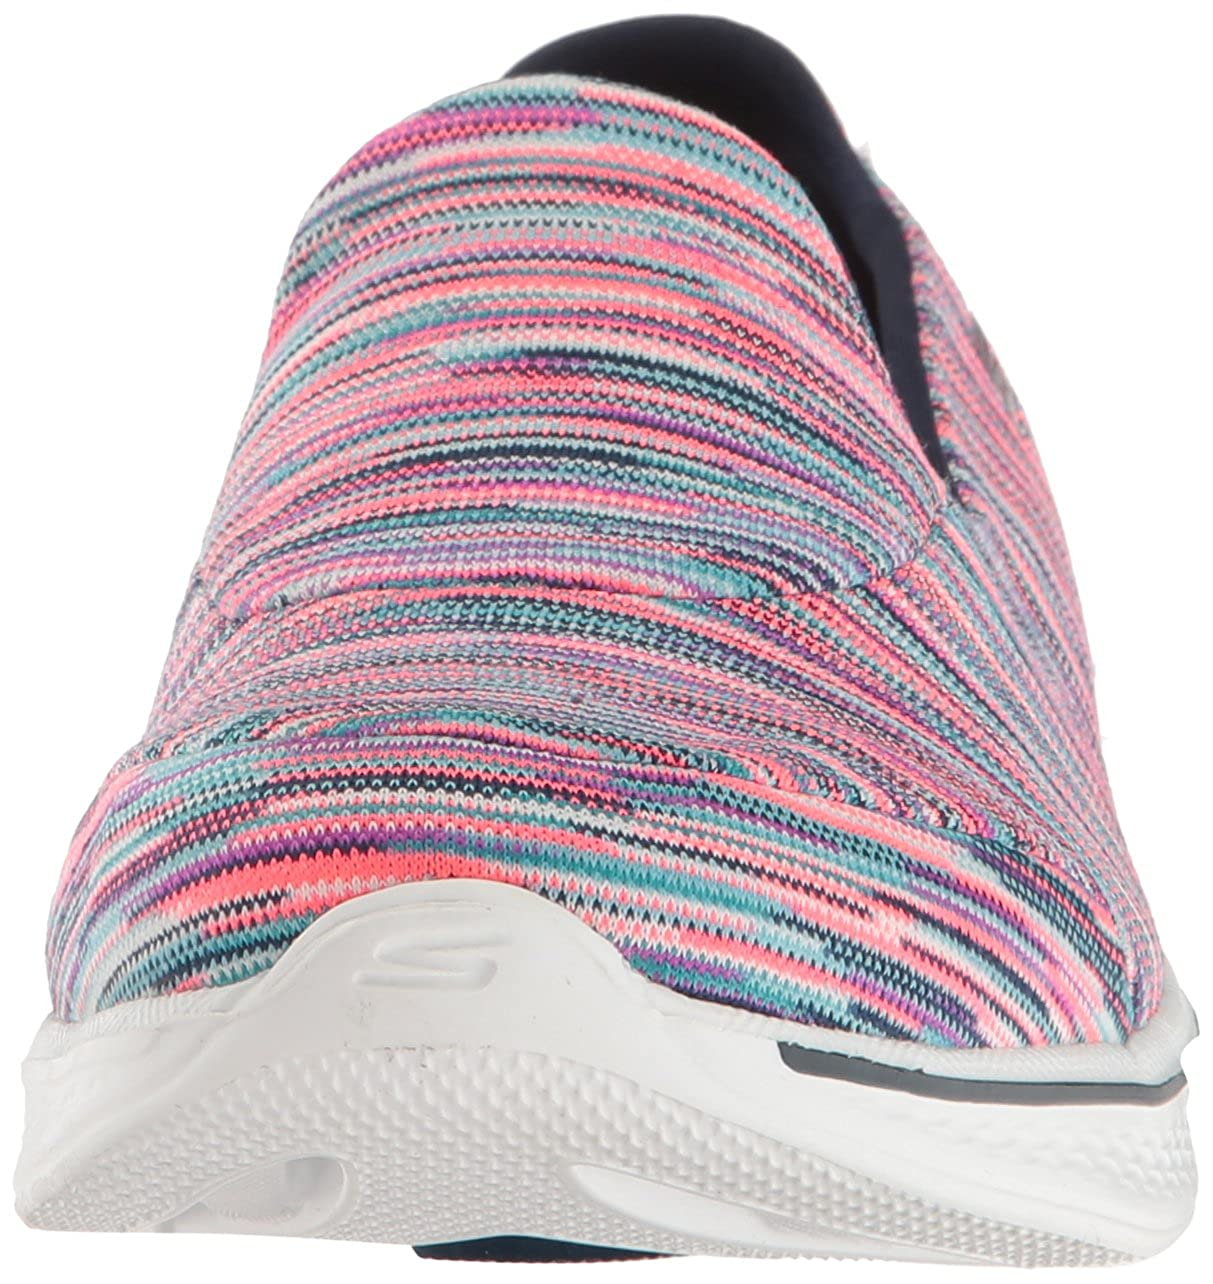 Skechers Merge Performance Damens's Go Walk 4 Merge Skechers Walking Schuhe  Multi 3da6be